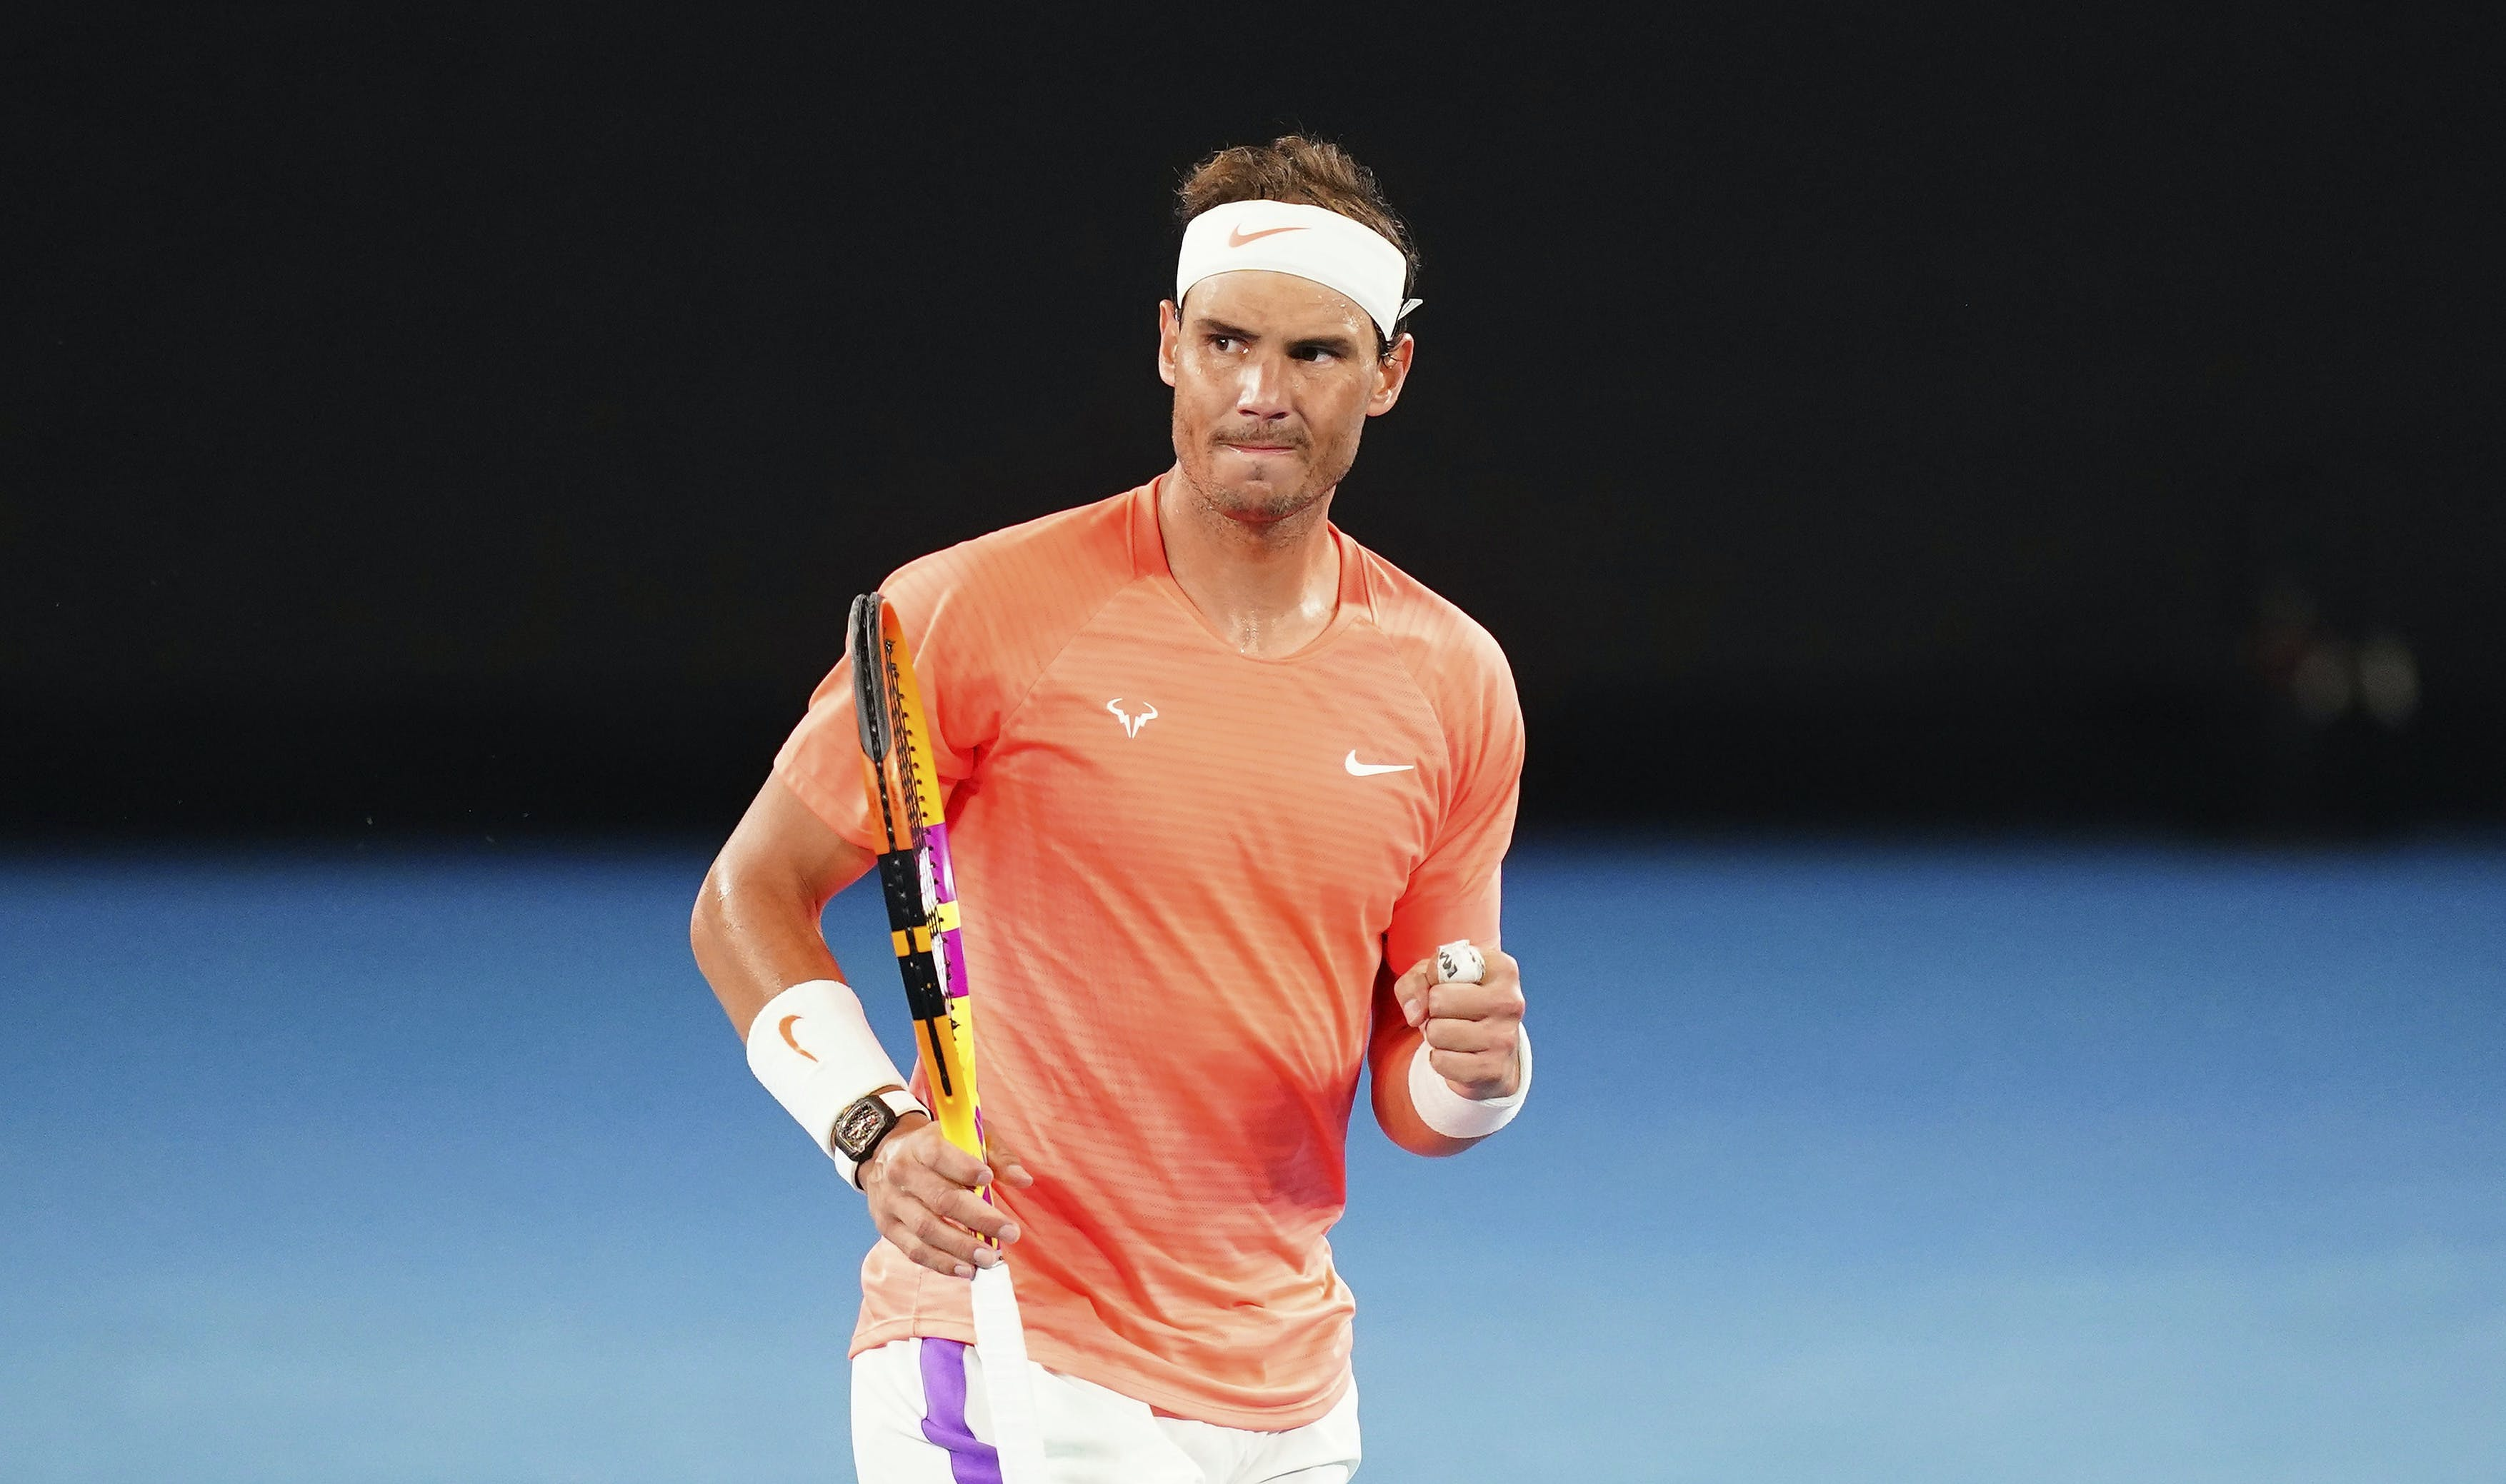 Rafael Nadal after winning his match against Cameron Norrie at the Australian Open 2021